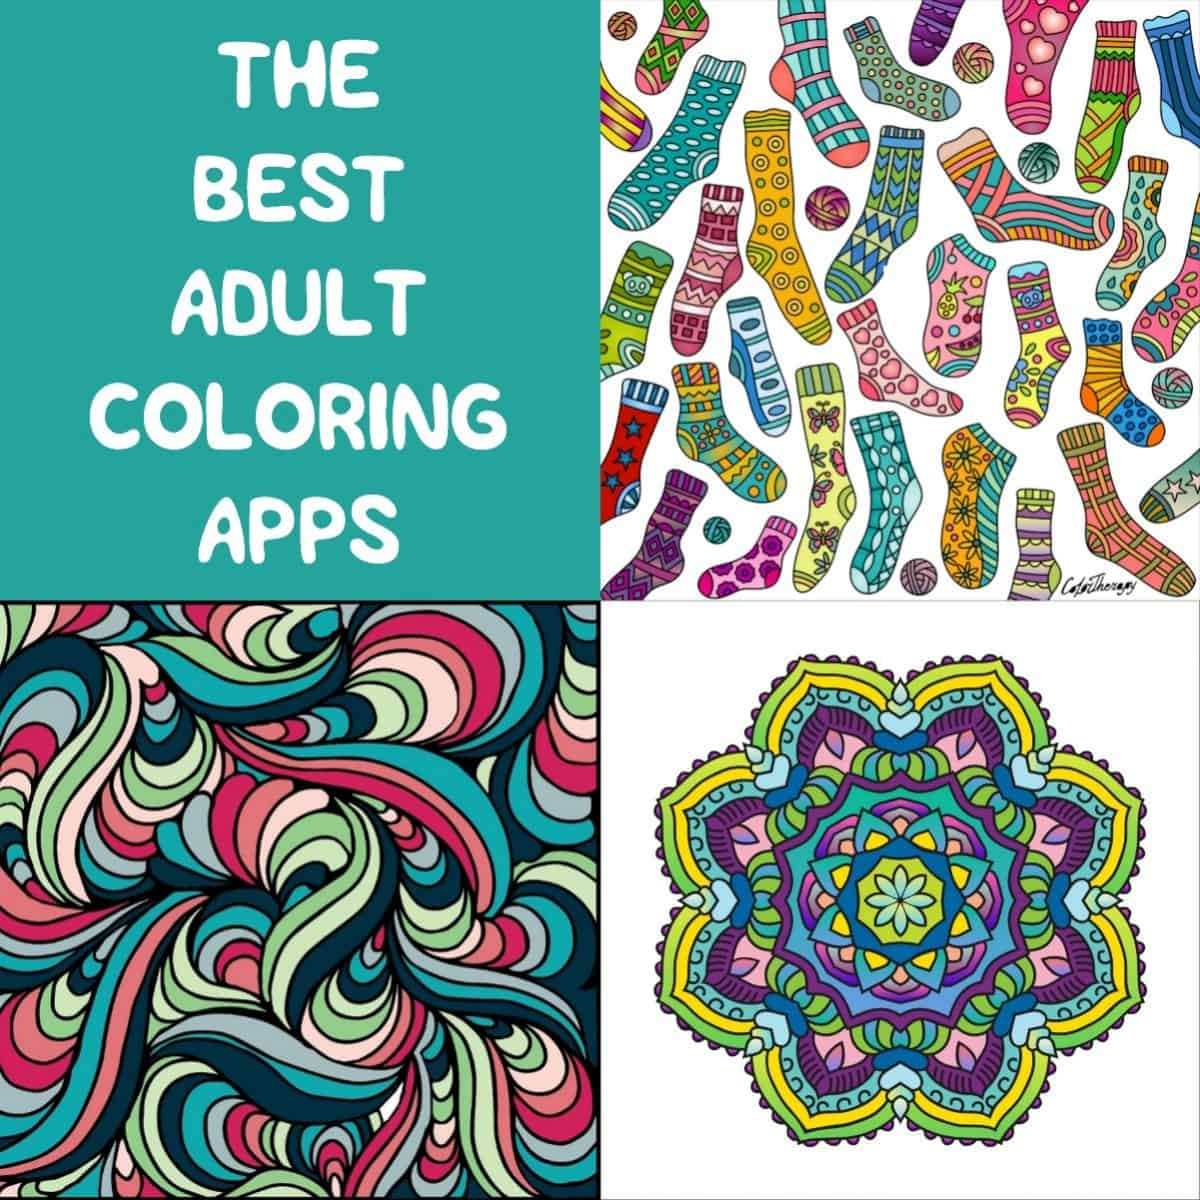 The best coloring apps for adults